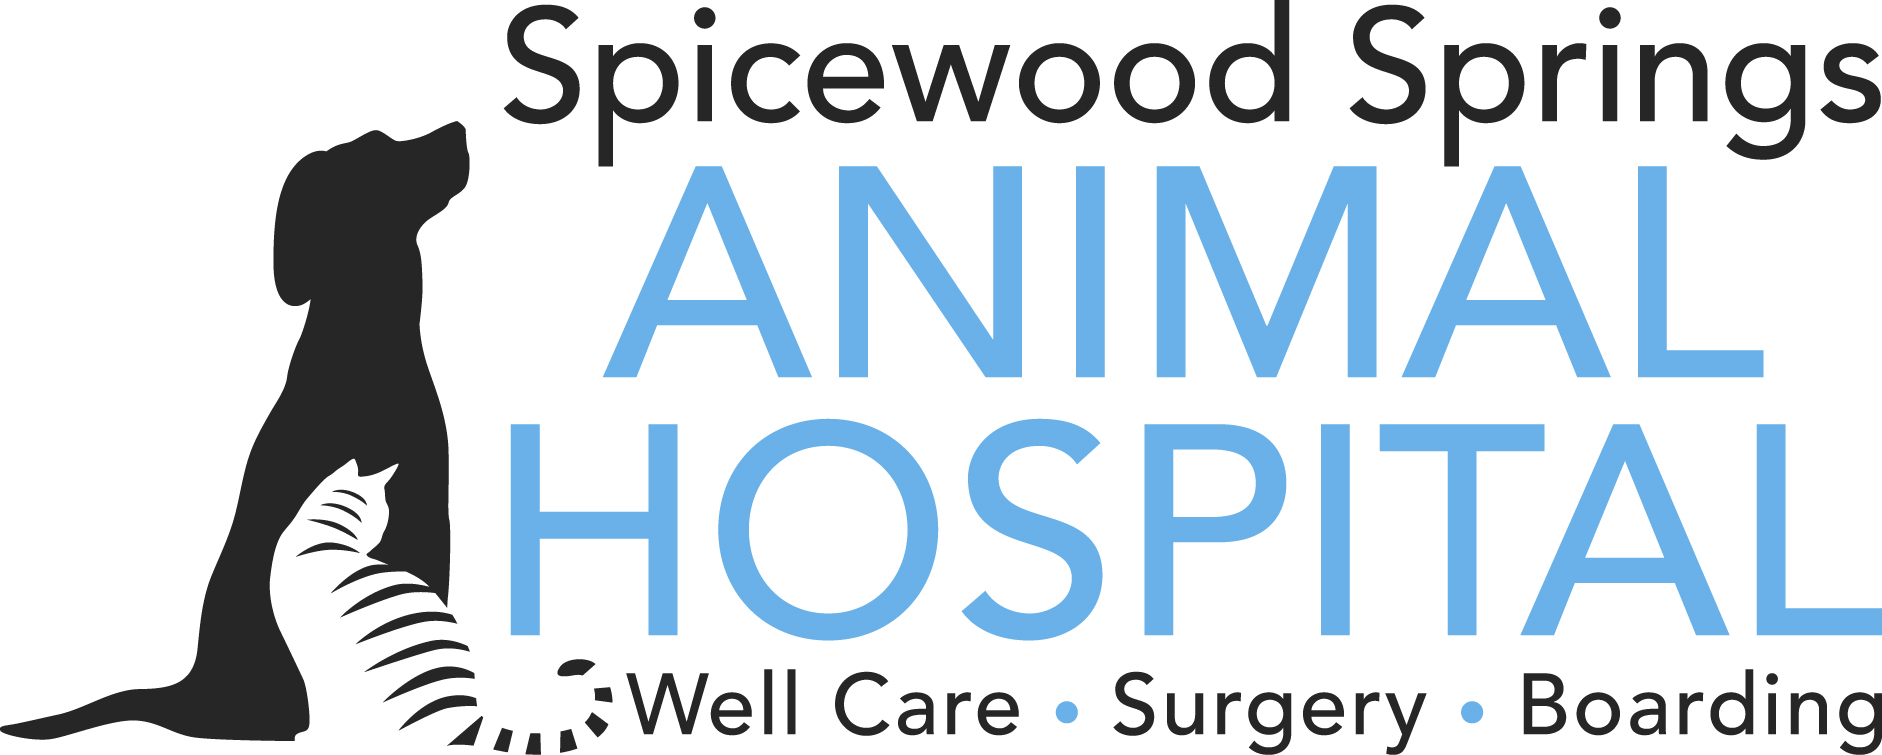 Spicewood Springs Animal Hospital